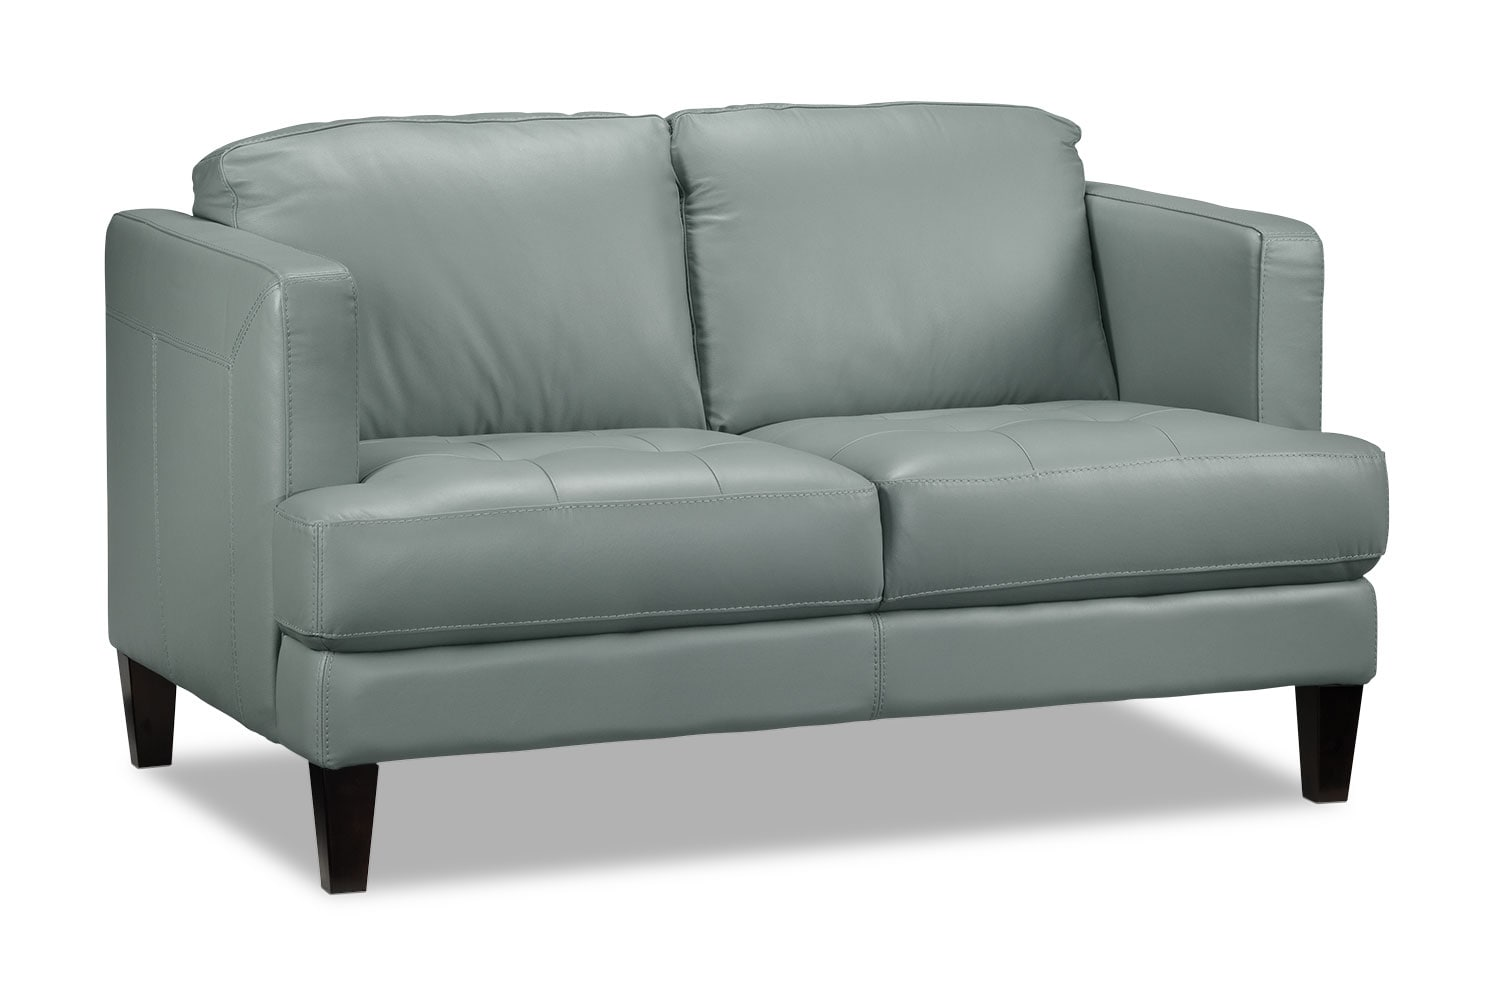 Walker Loveseat - Seafoam